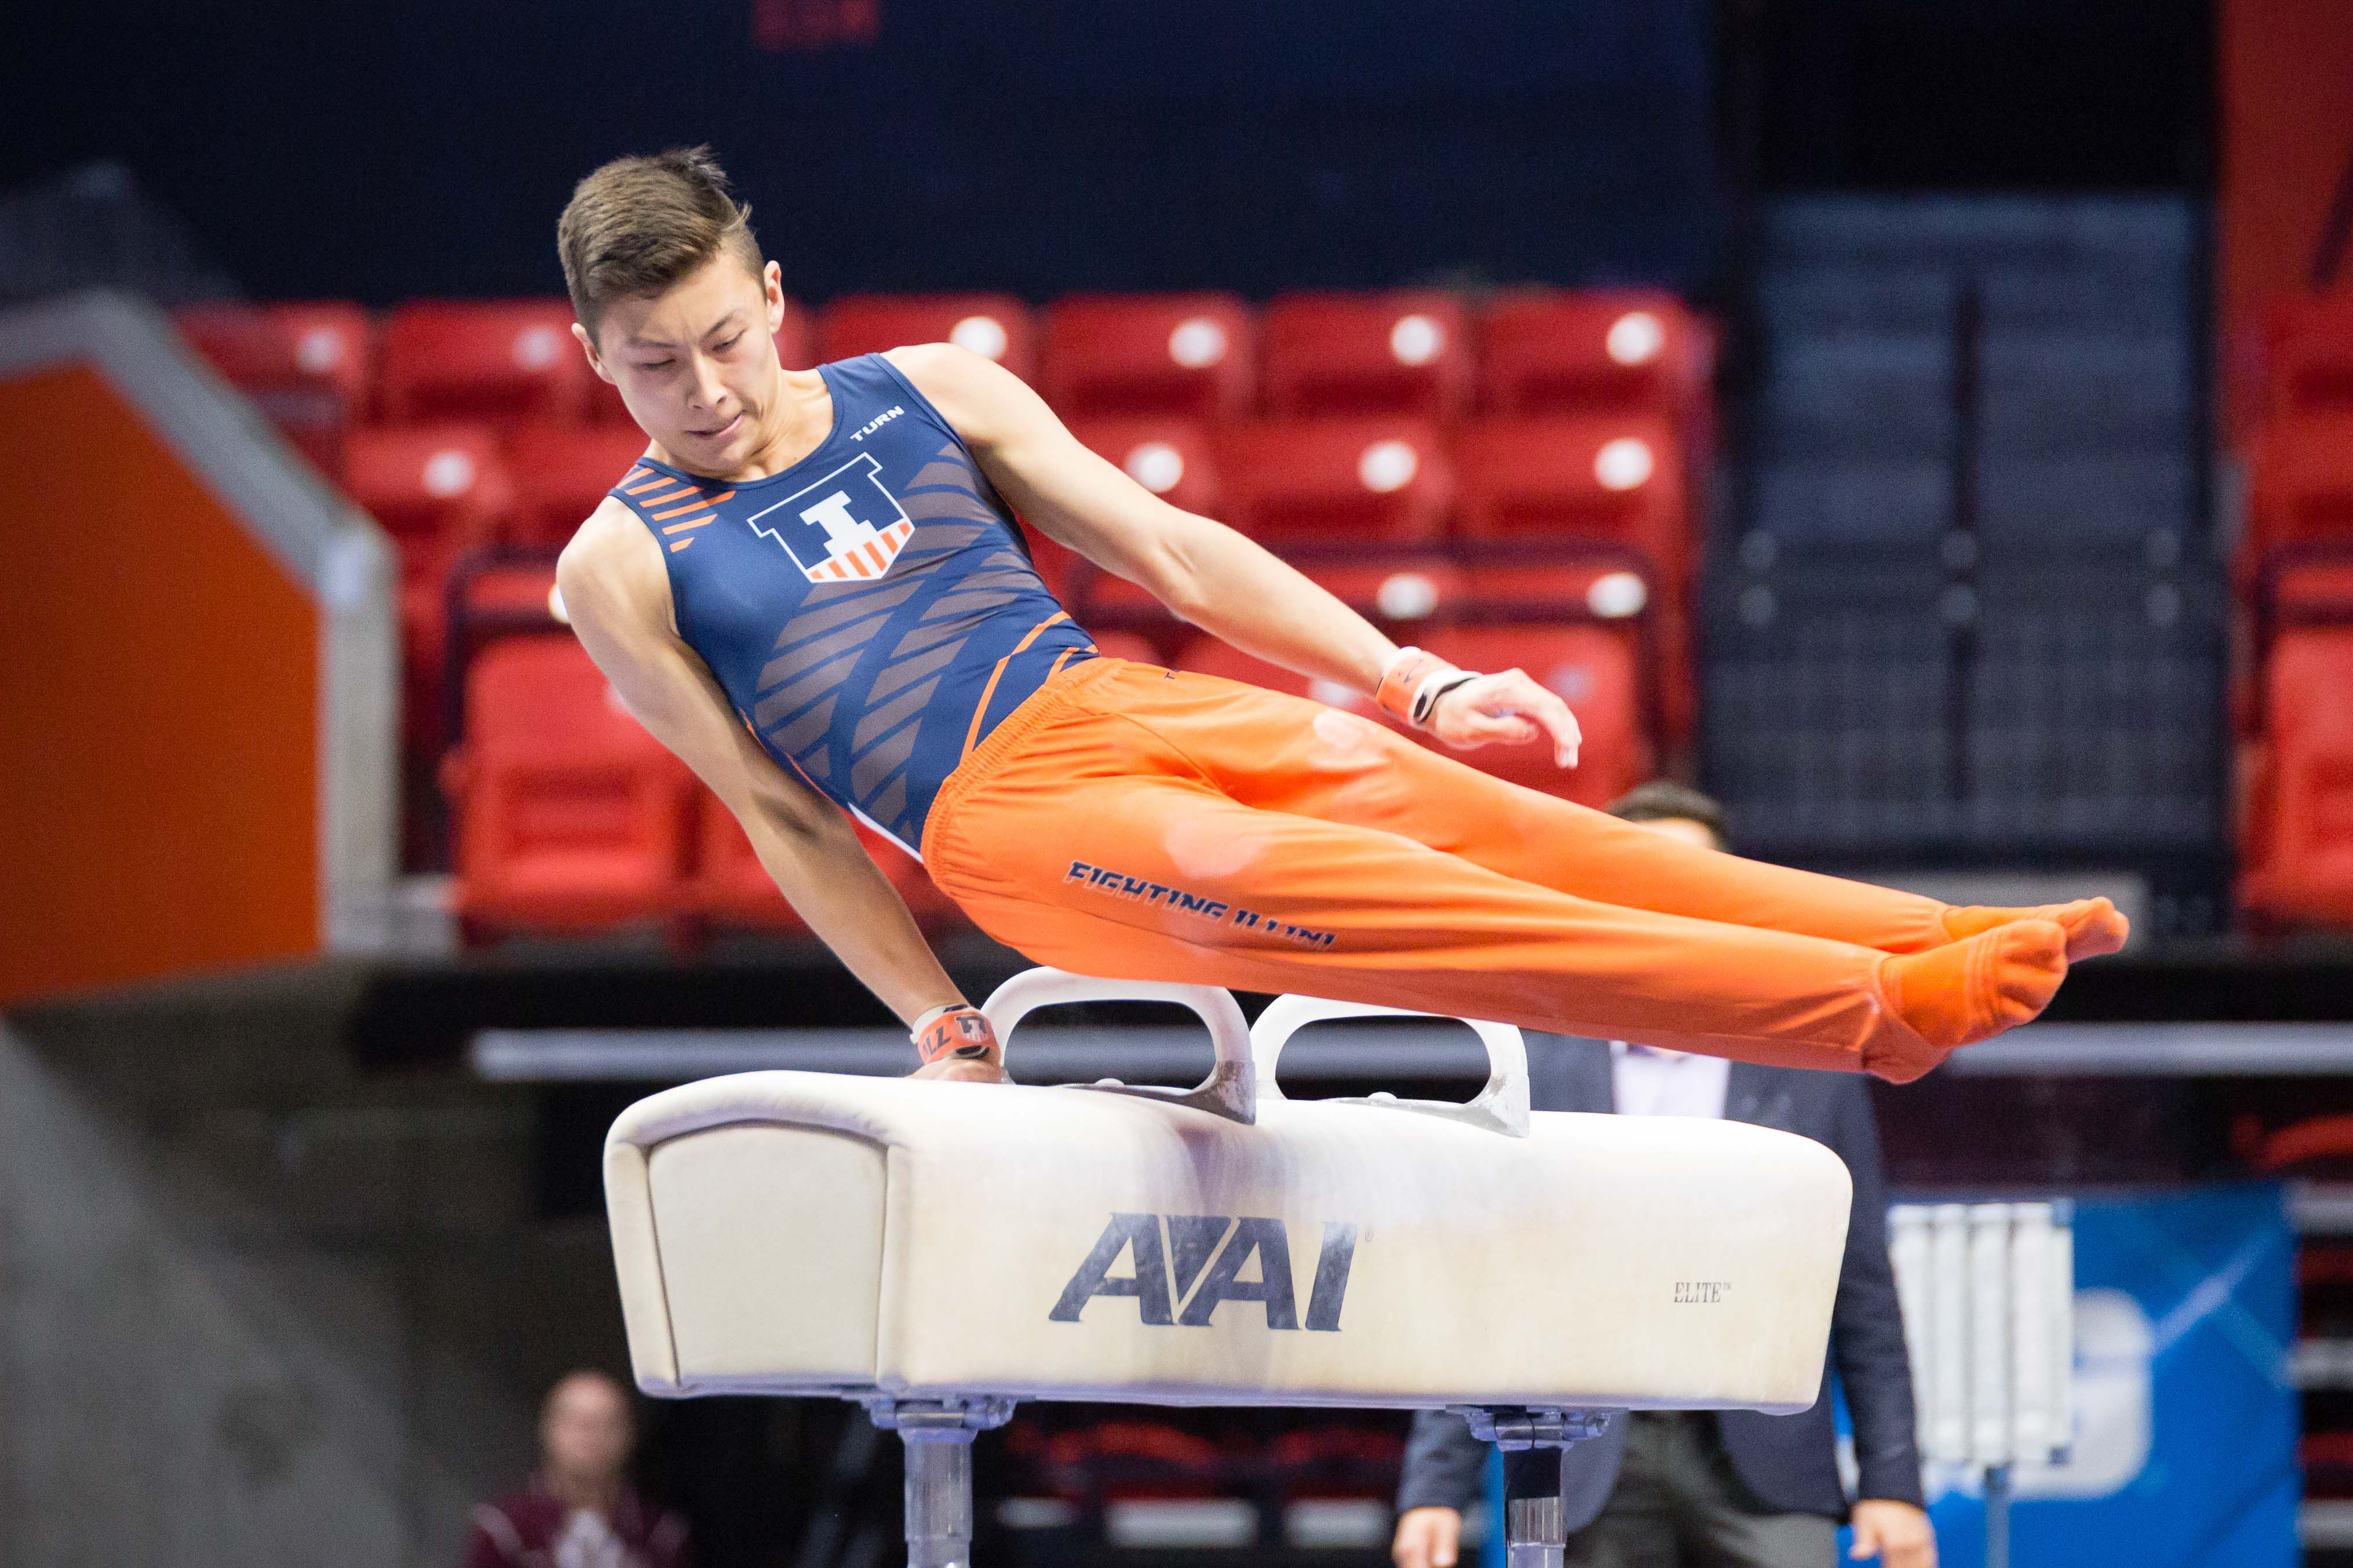 Illinois' Brandon Ngai performs on the pommel horse during the Men's Big Ten Gymnastics Championships at State Farm Center. He took the title with a score of 14.825.